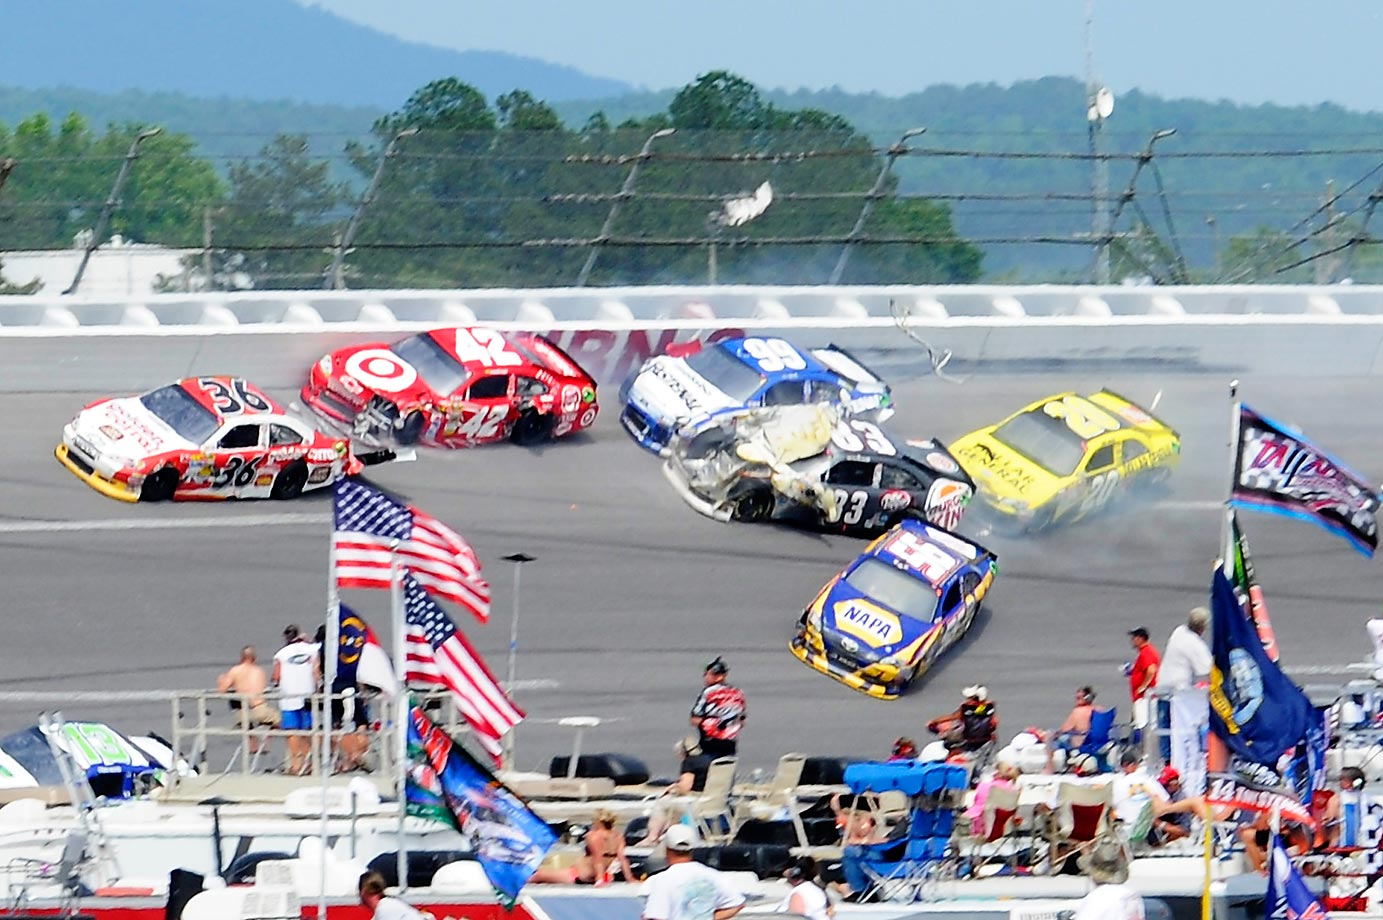 The race saw two crashes in the last 60 laps: one on lap 142 involving five cars in turn 3 cause by some cars running out of gas, and another in turn 1 during a late restart on lap 186